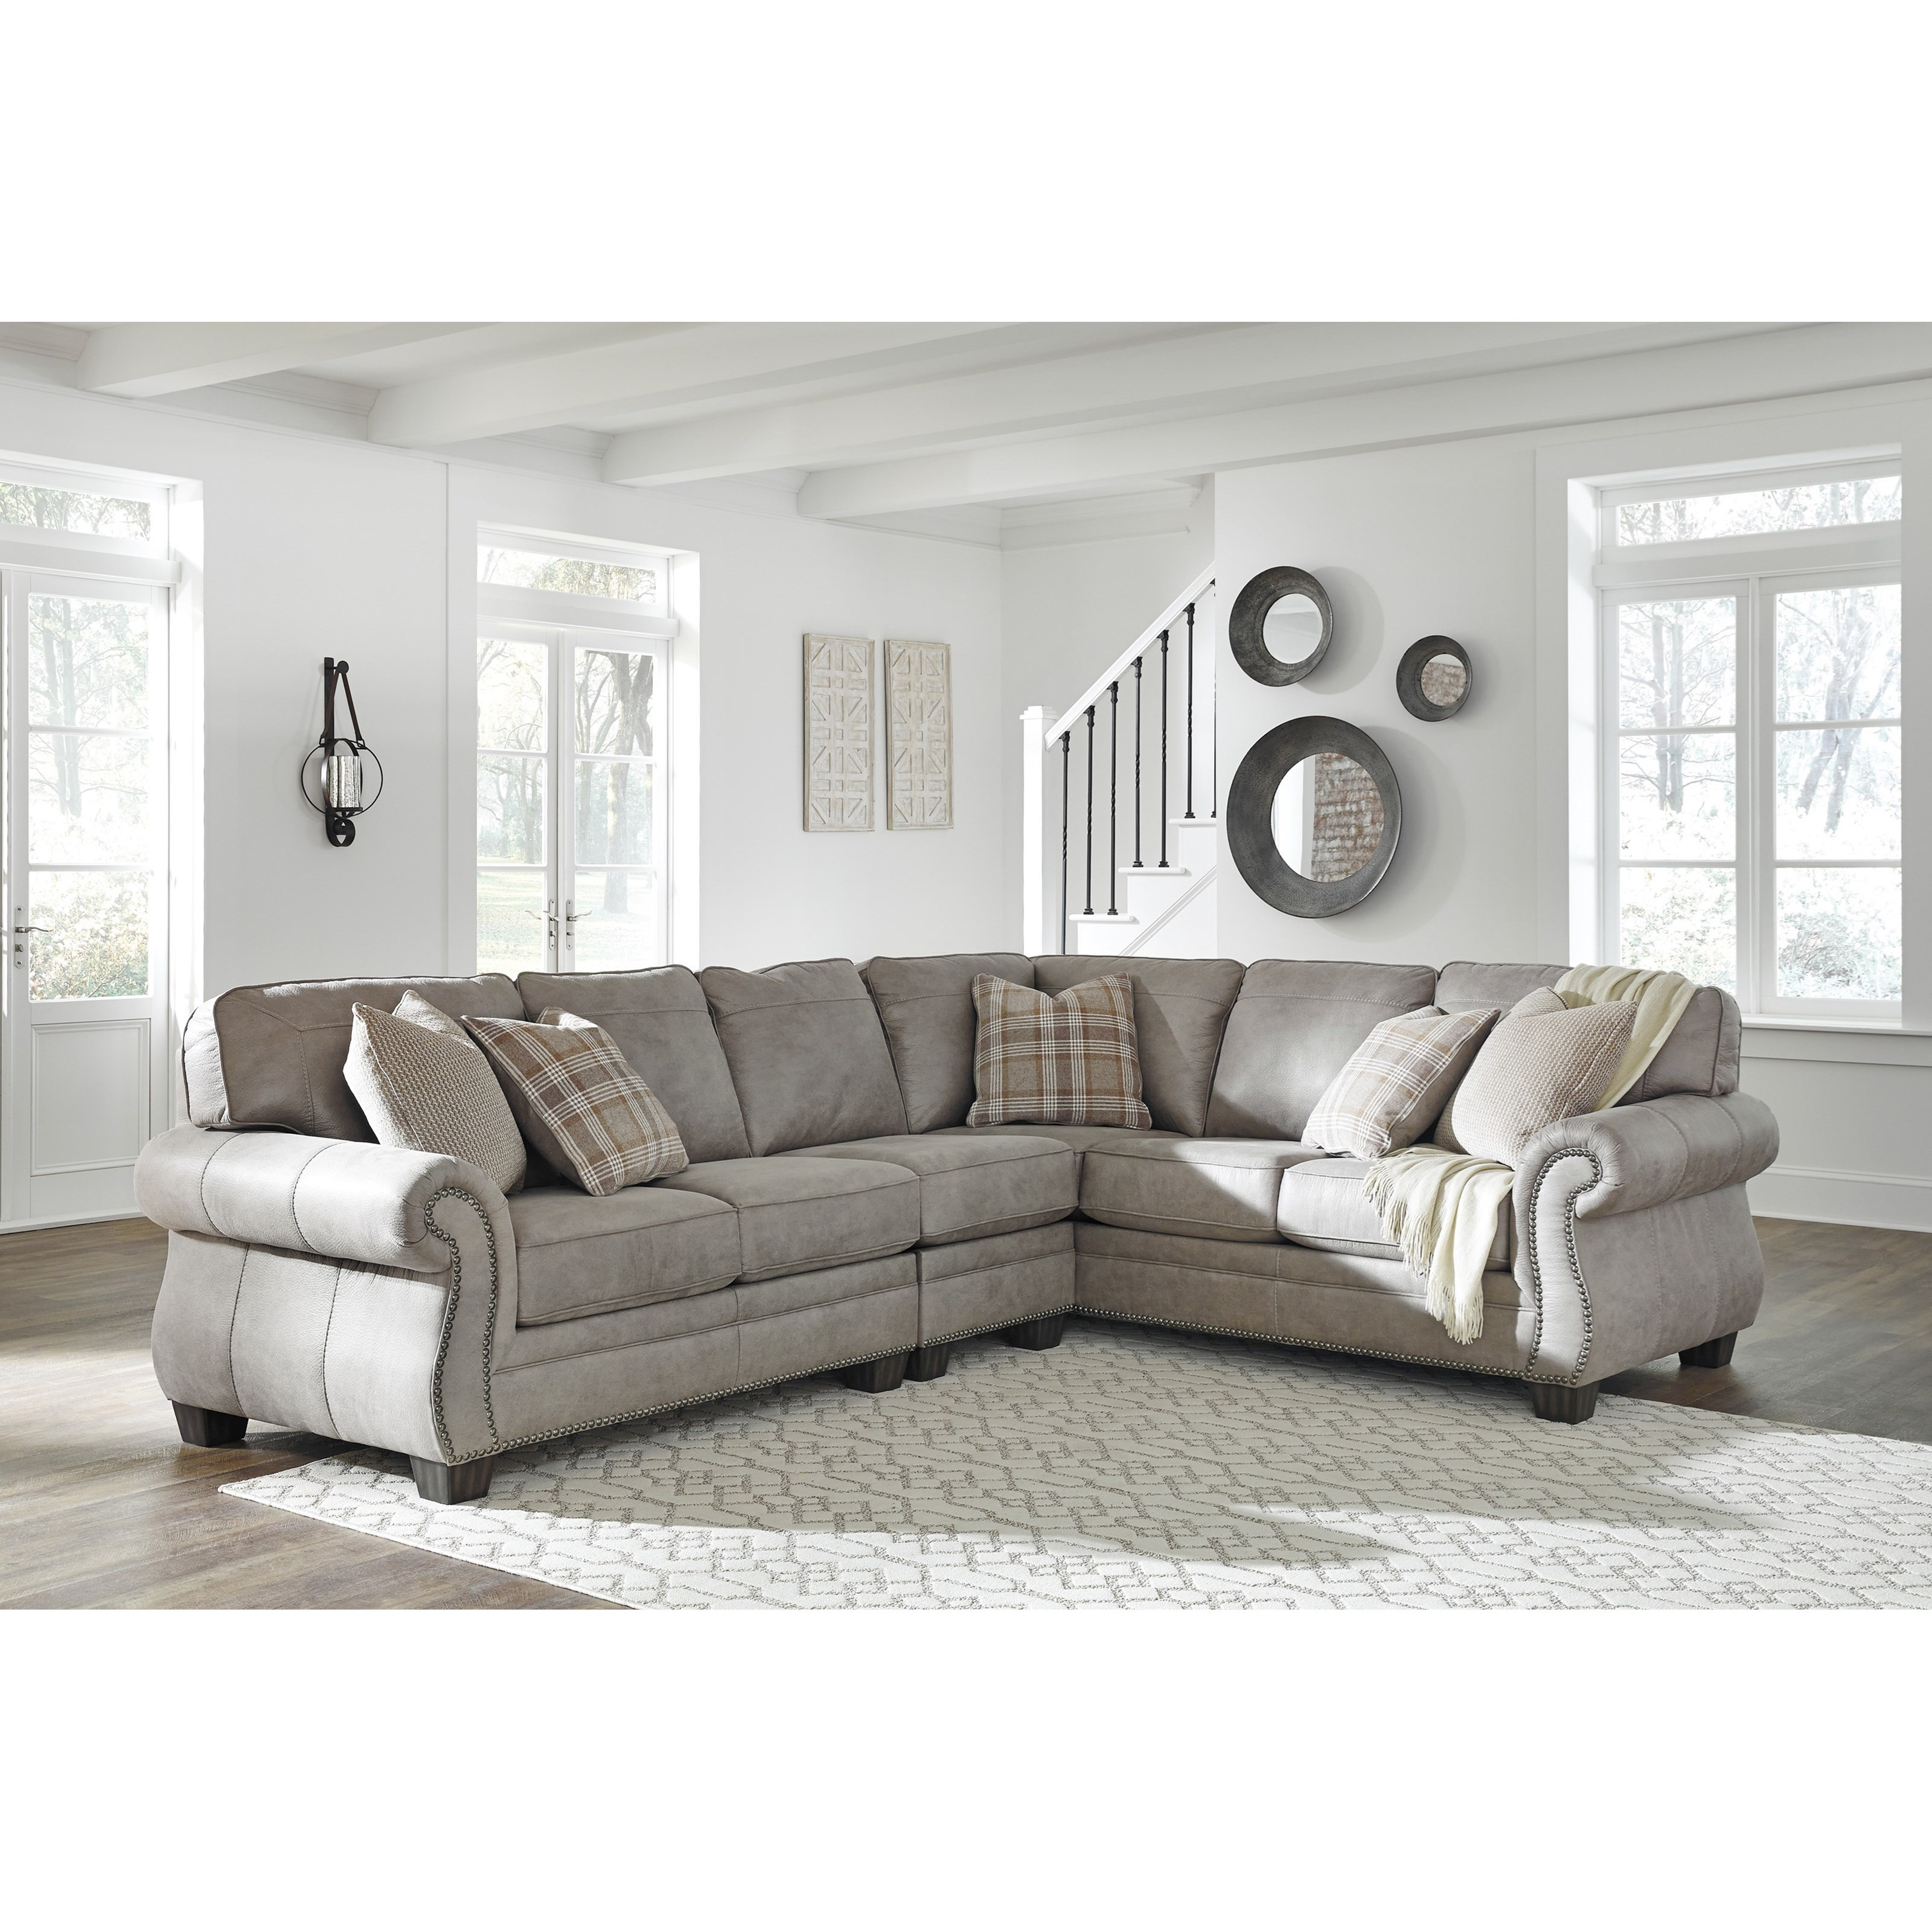 Olsberg 3 Piece L-Shaped Sectional by Signature Design by Ashley at Beck's Furniture